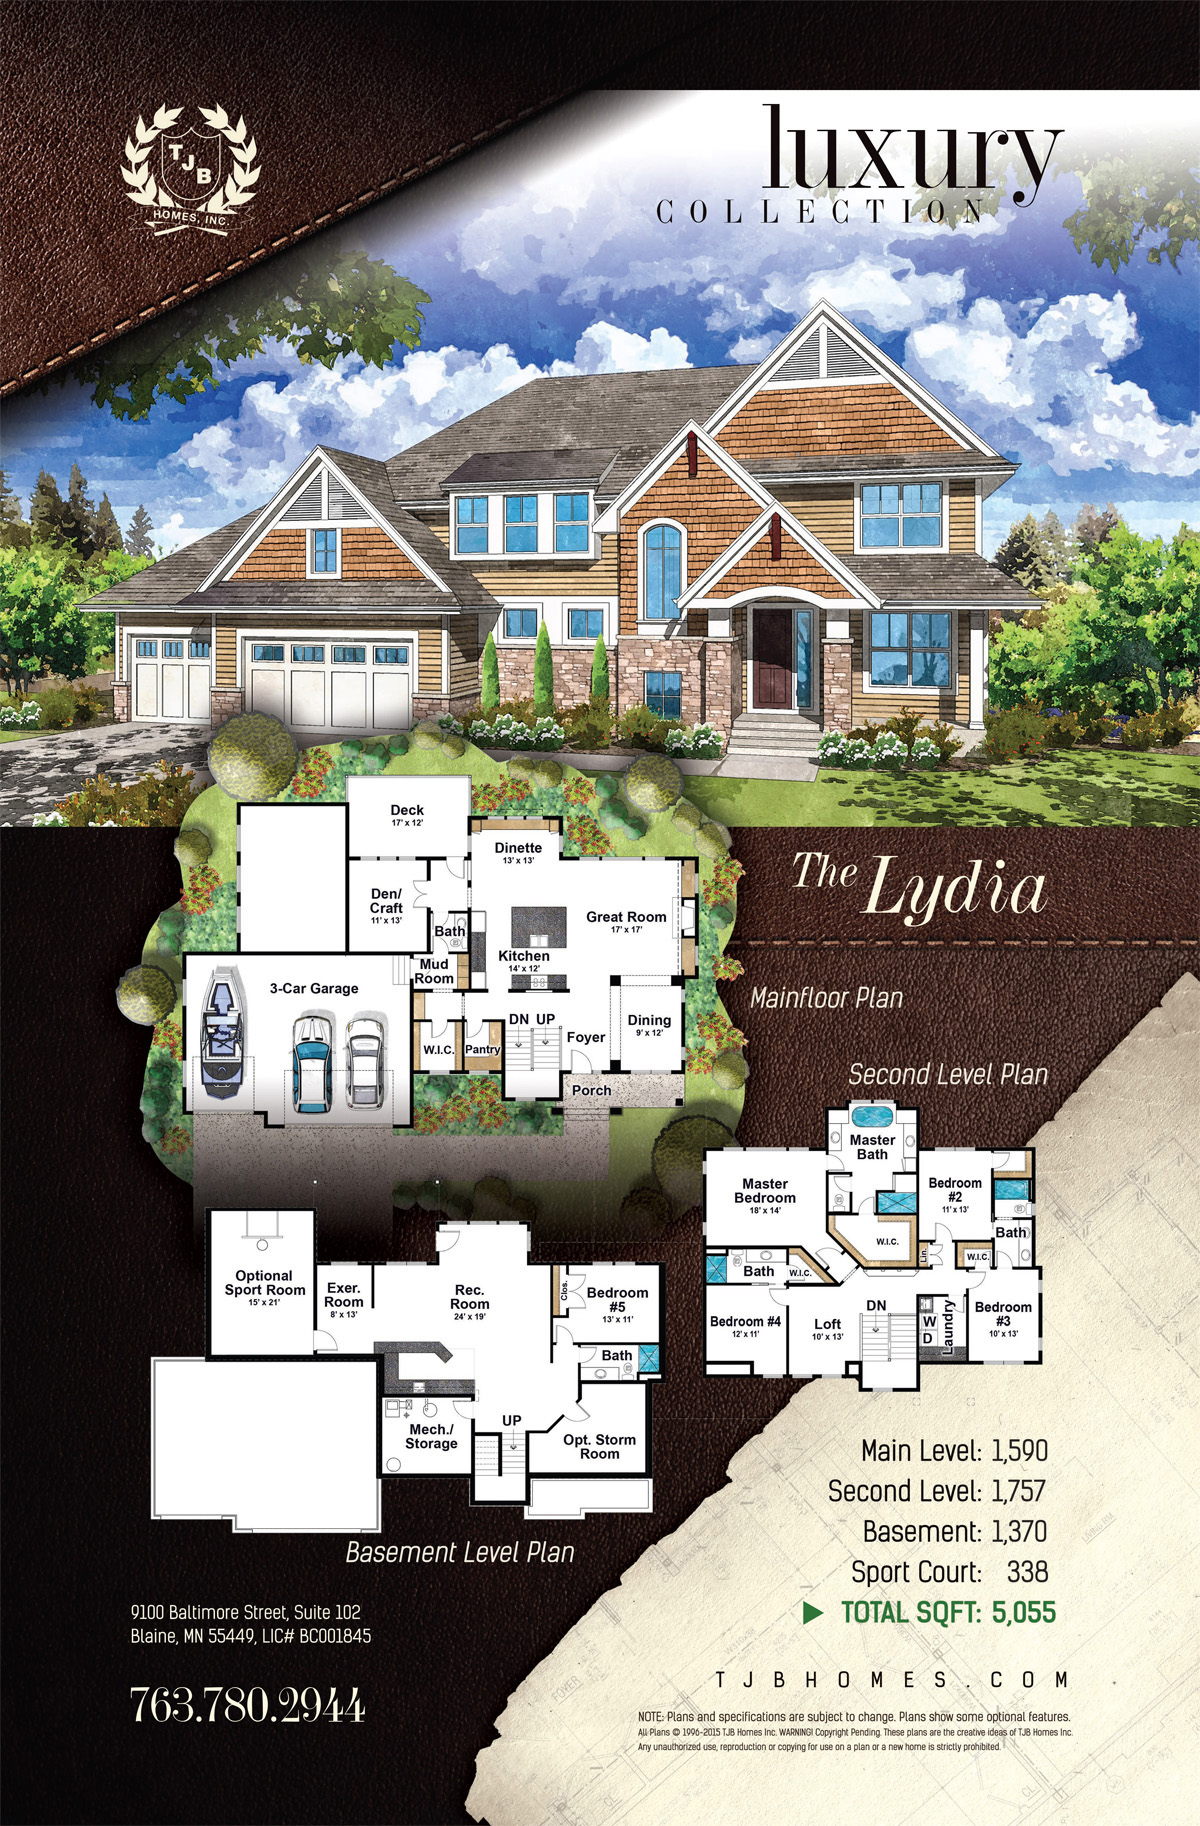 Two Story Over 3,000 Sq Ft Home Plans - The Lydia